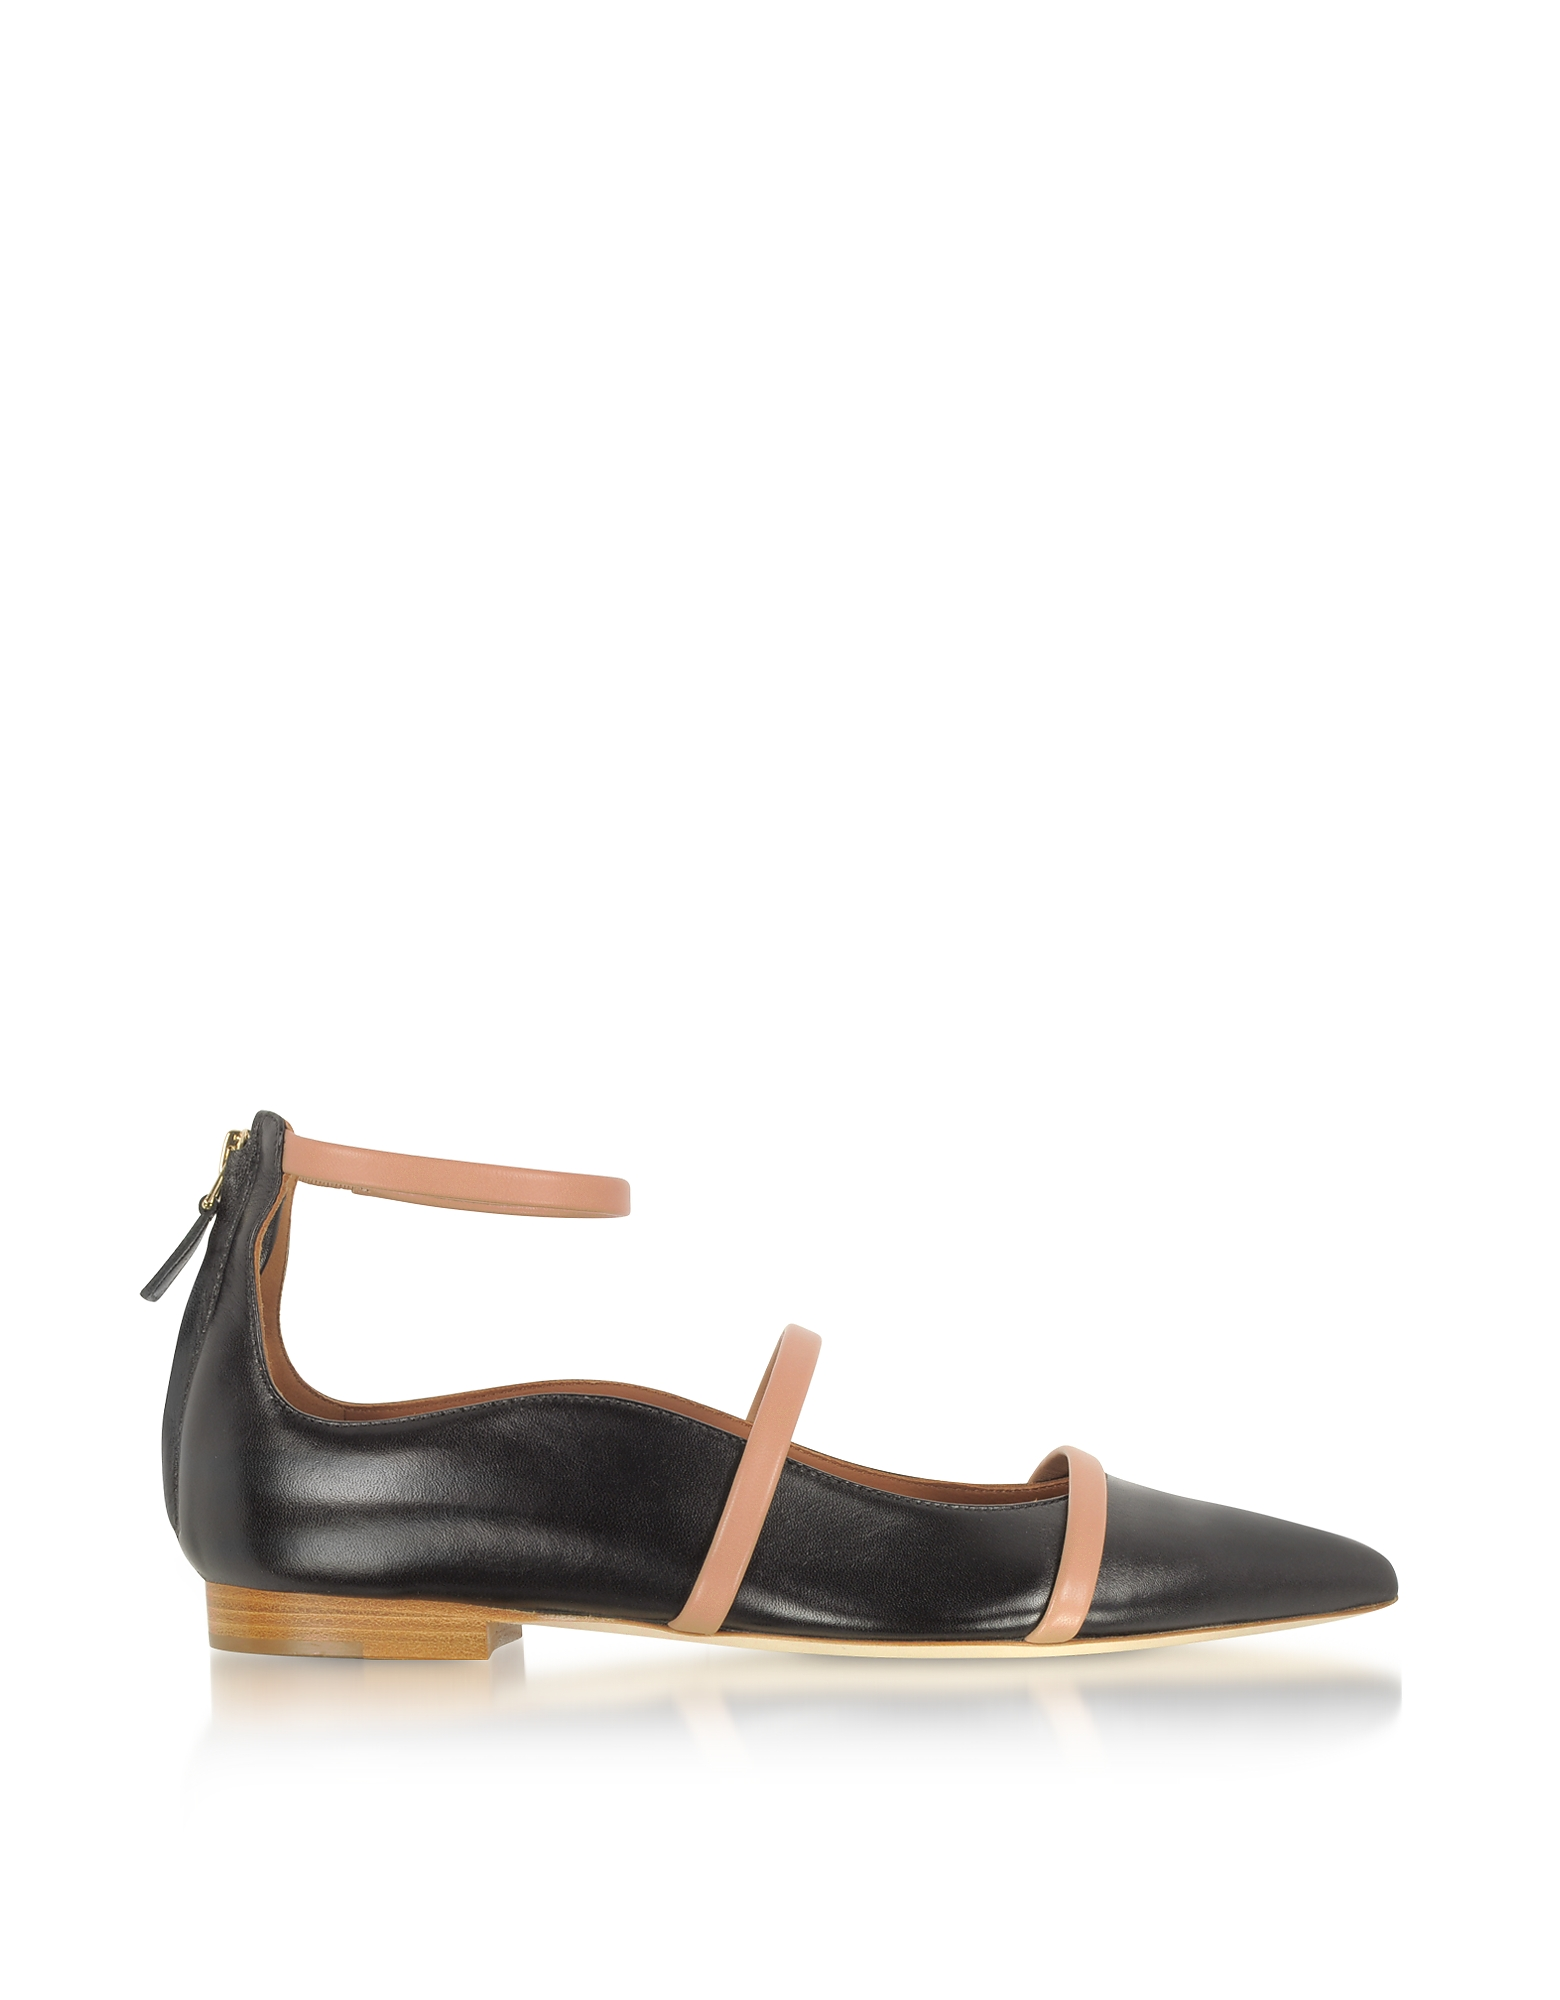 Malone Souliers Shoes, Robyn Flat Black and Nude Nappa Leather Ballerinas